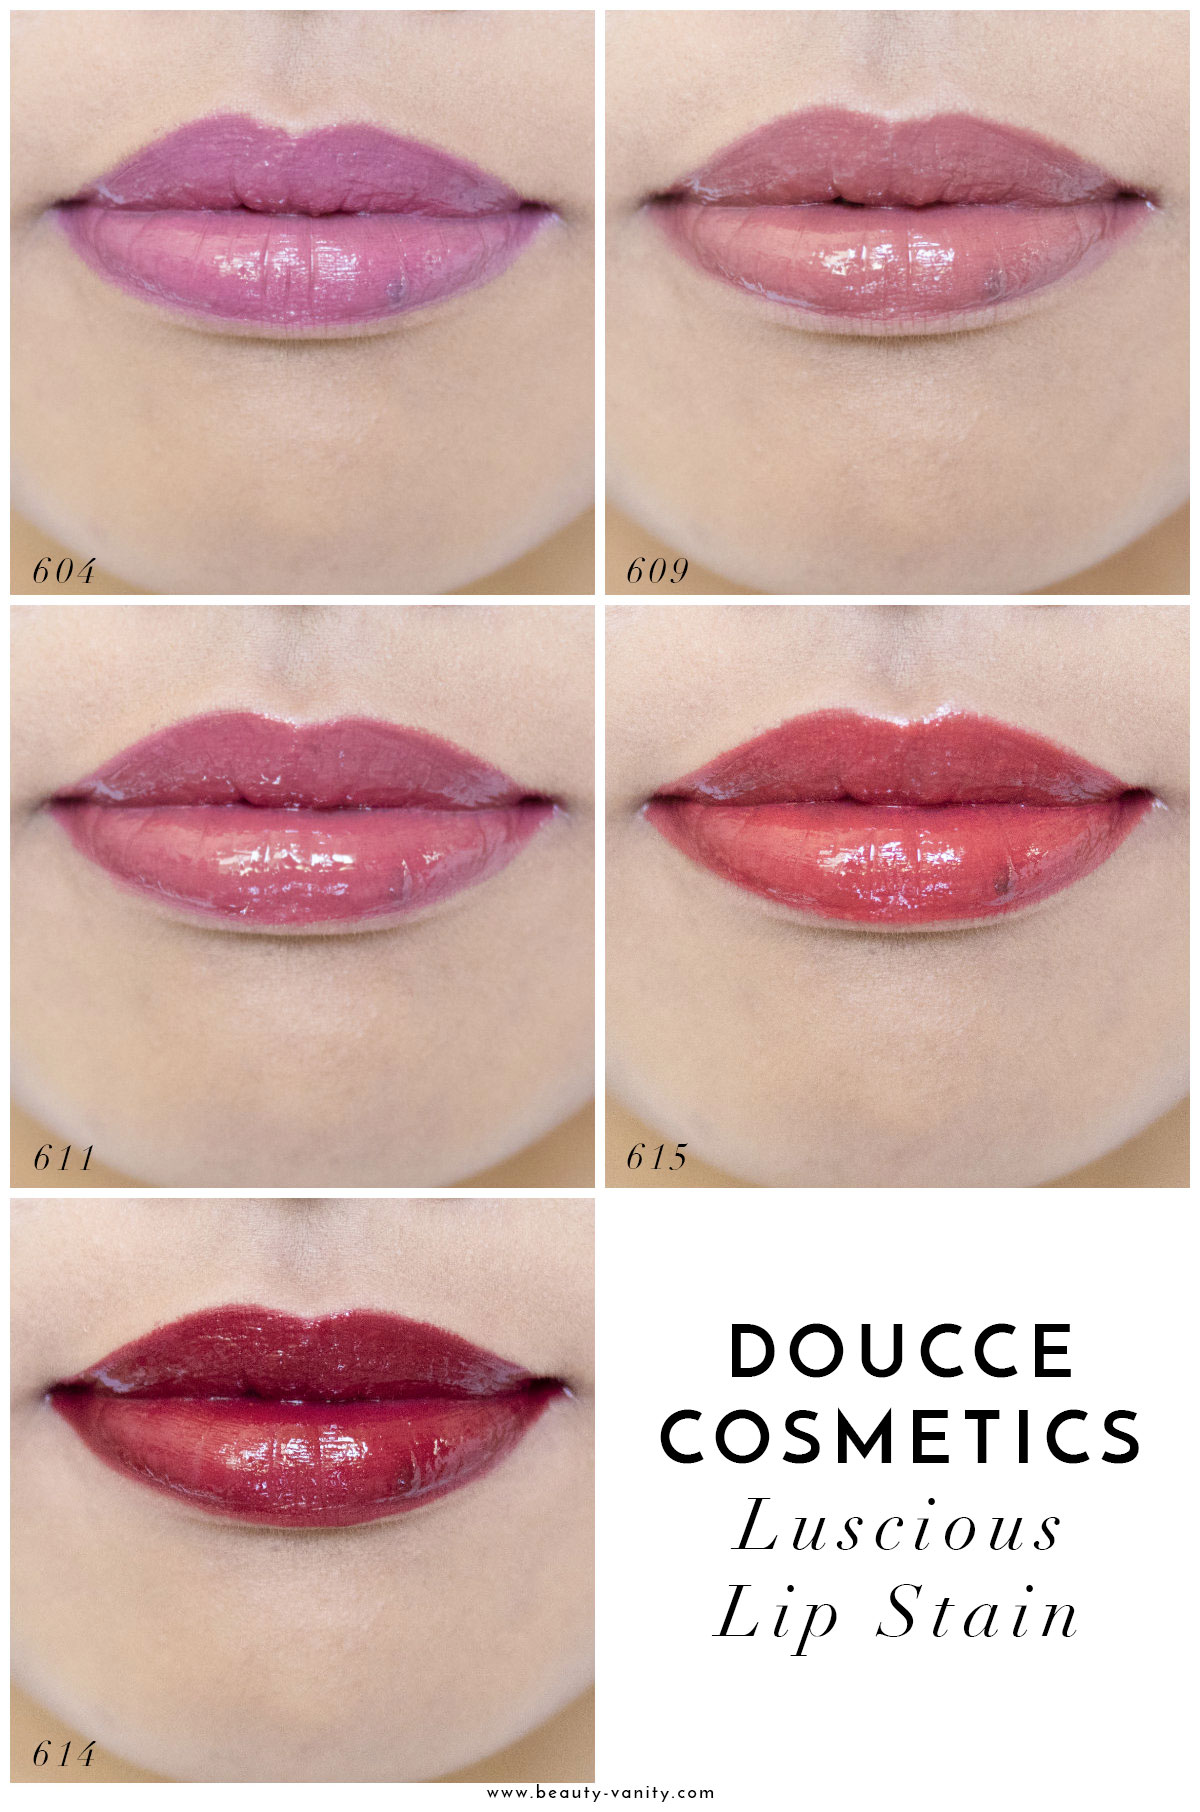 Doucce Cosmetics Luscious Lip Stain Swatches